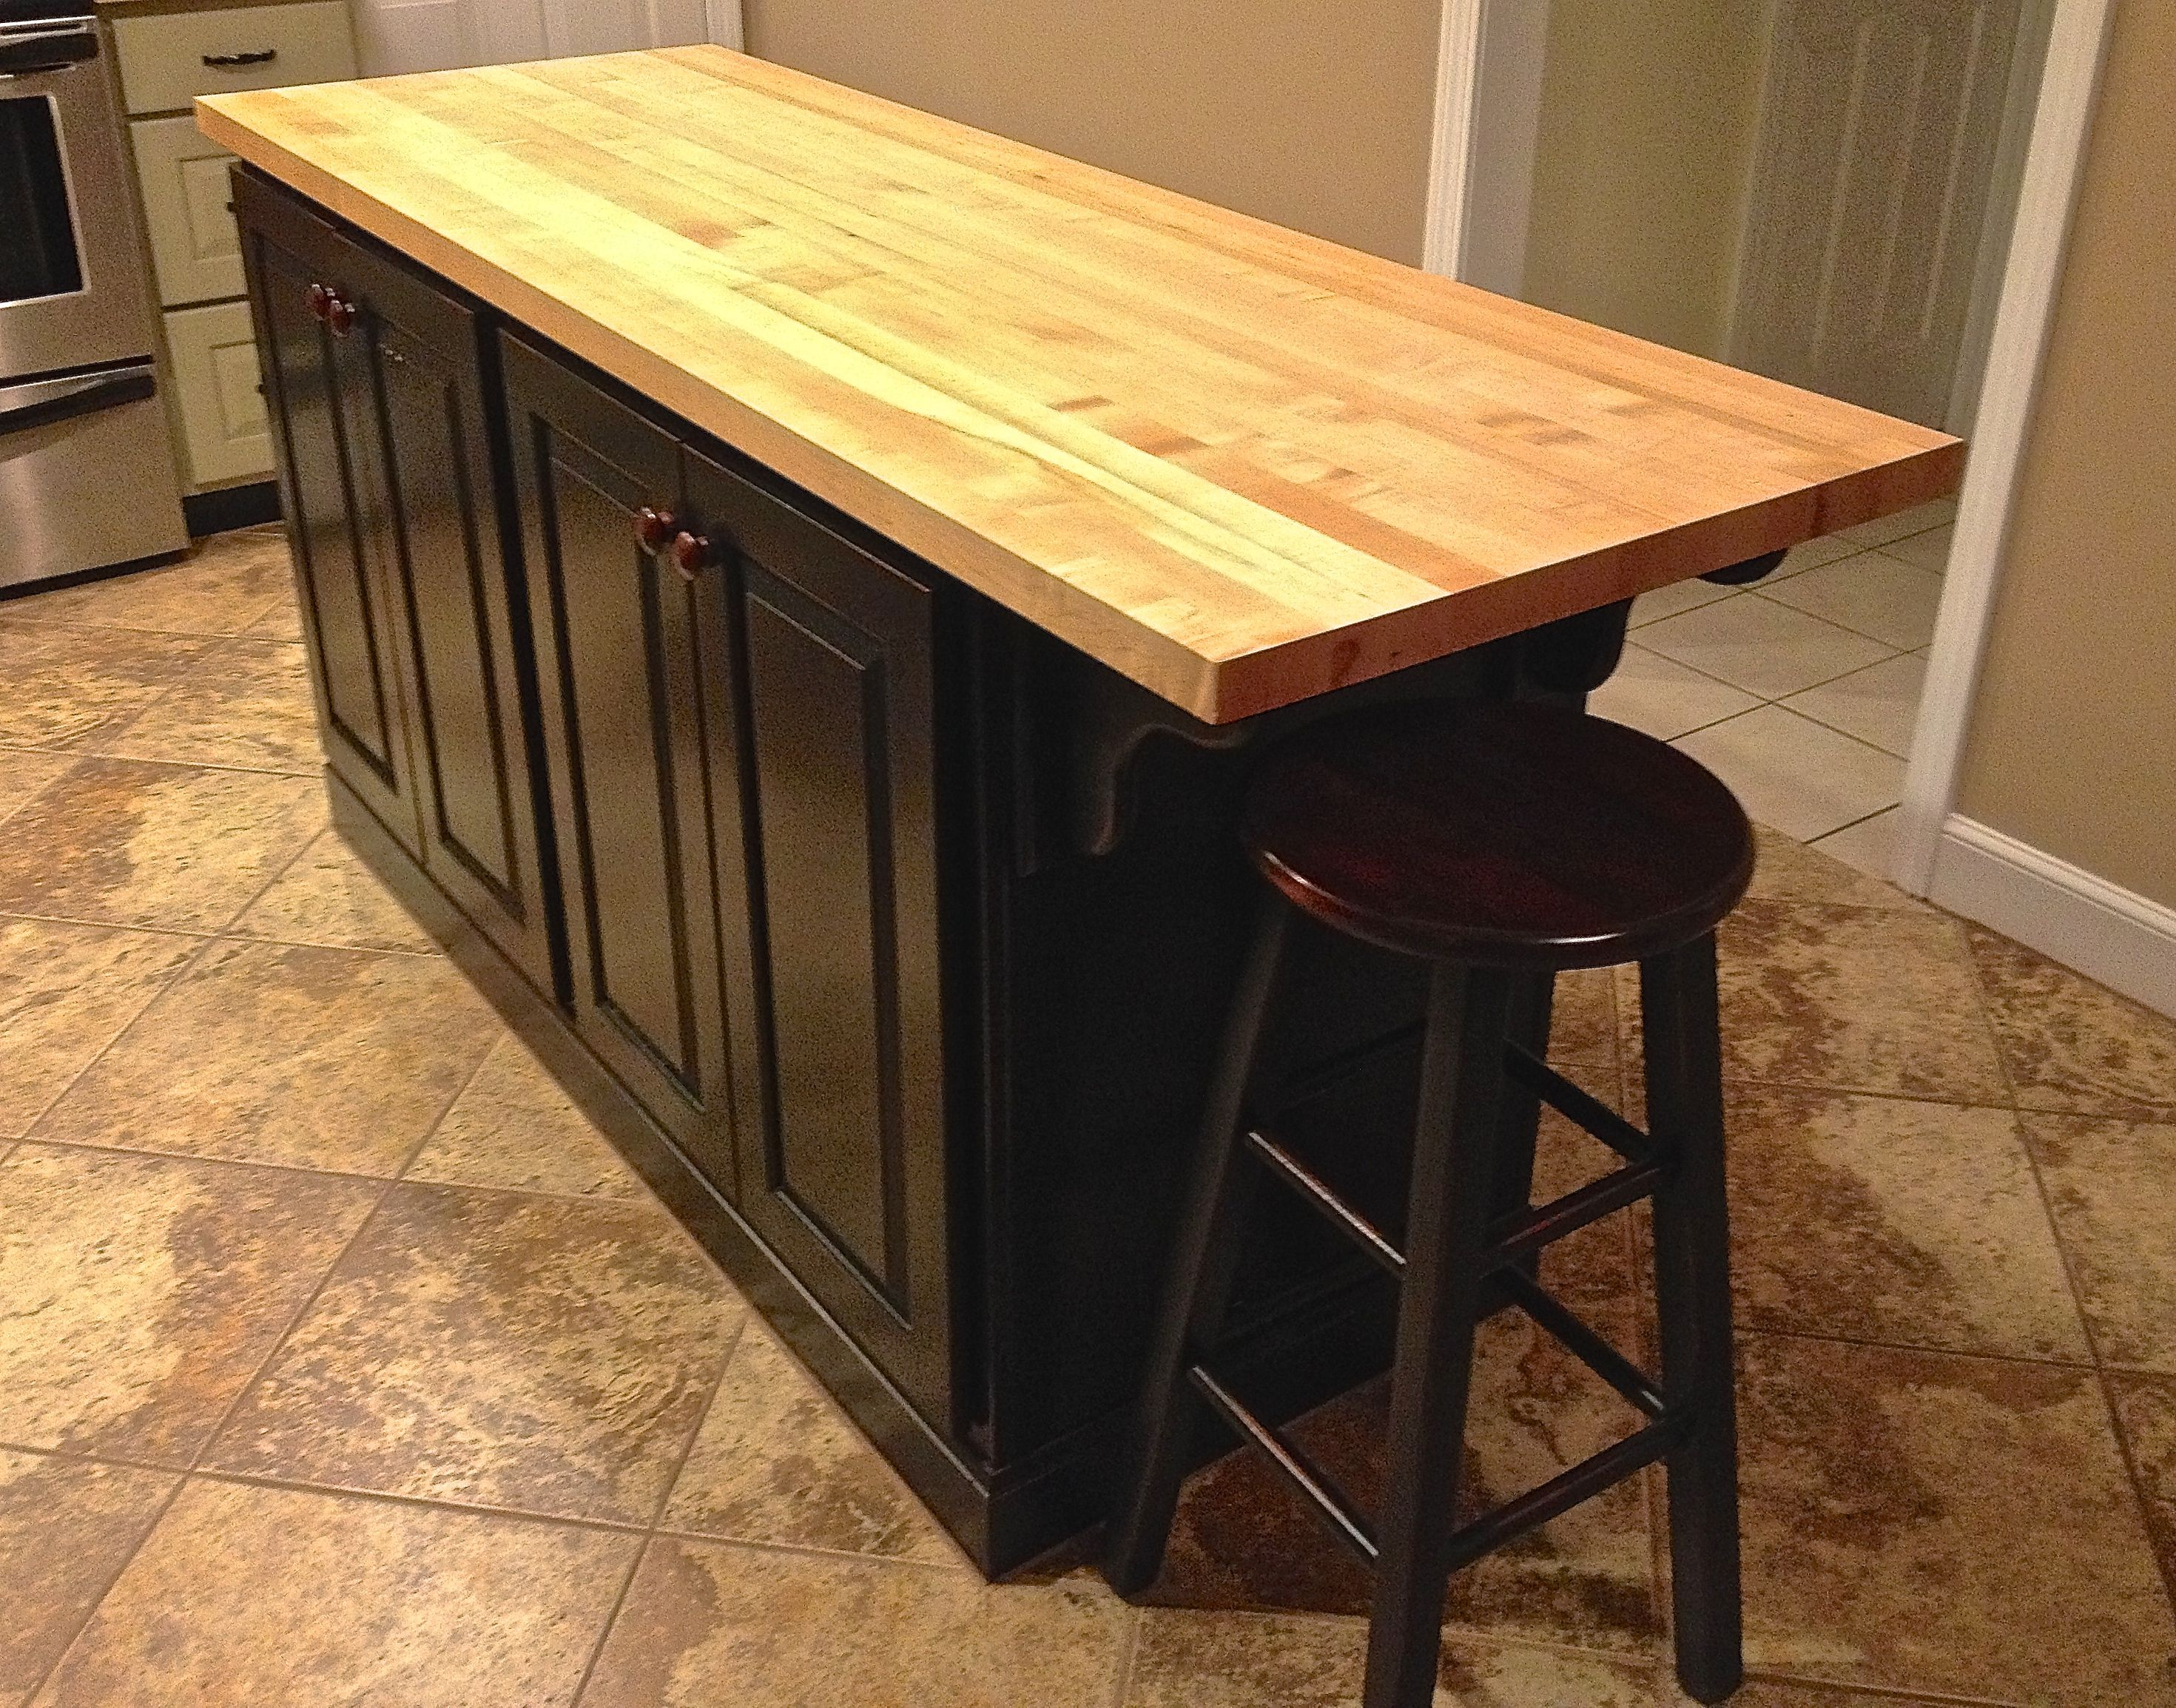 Black Distressed Island With A Maple Butcher Block Countertop In A